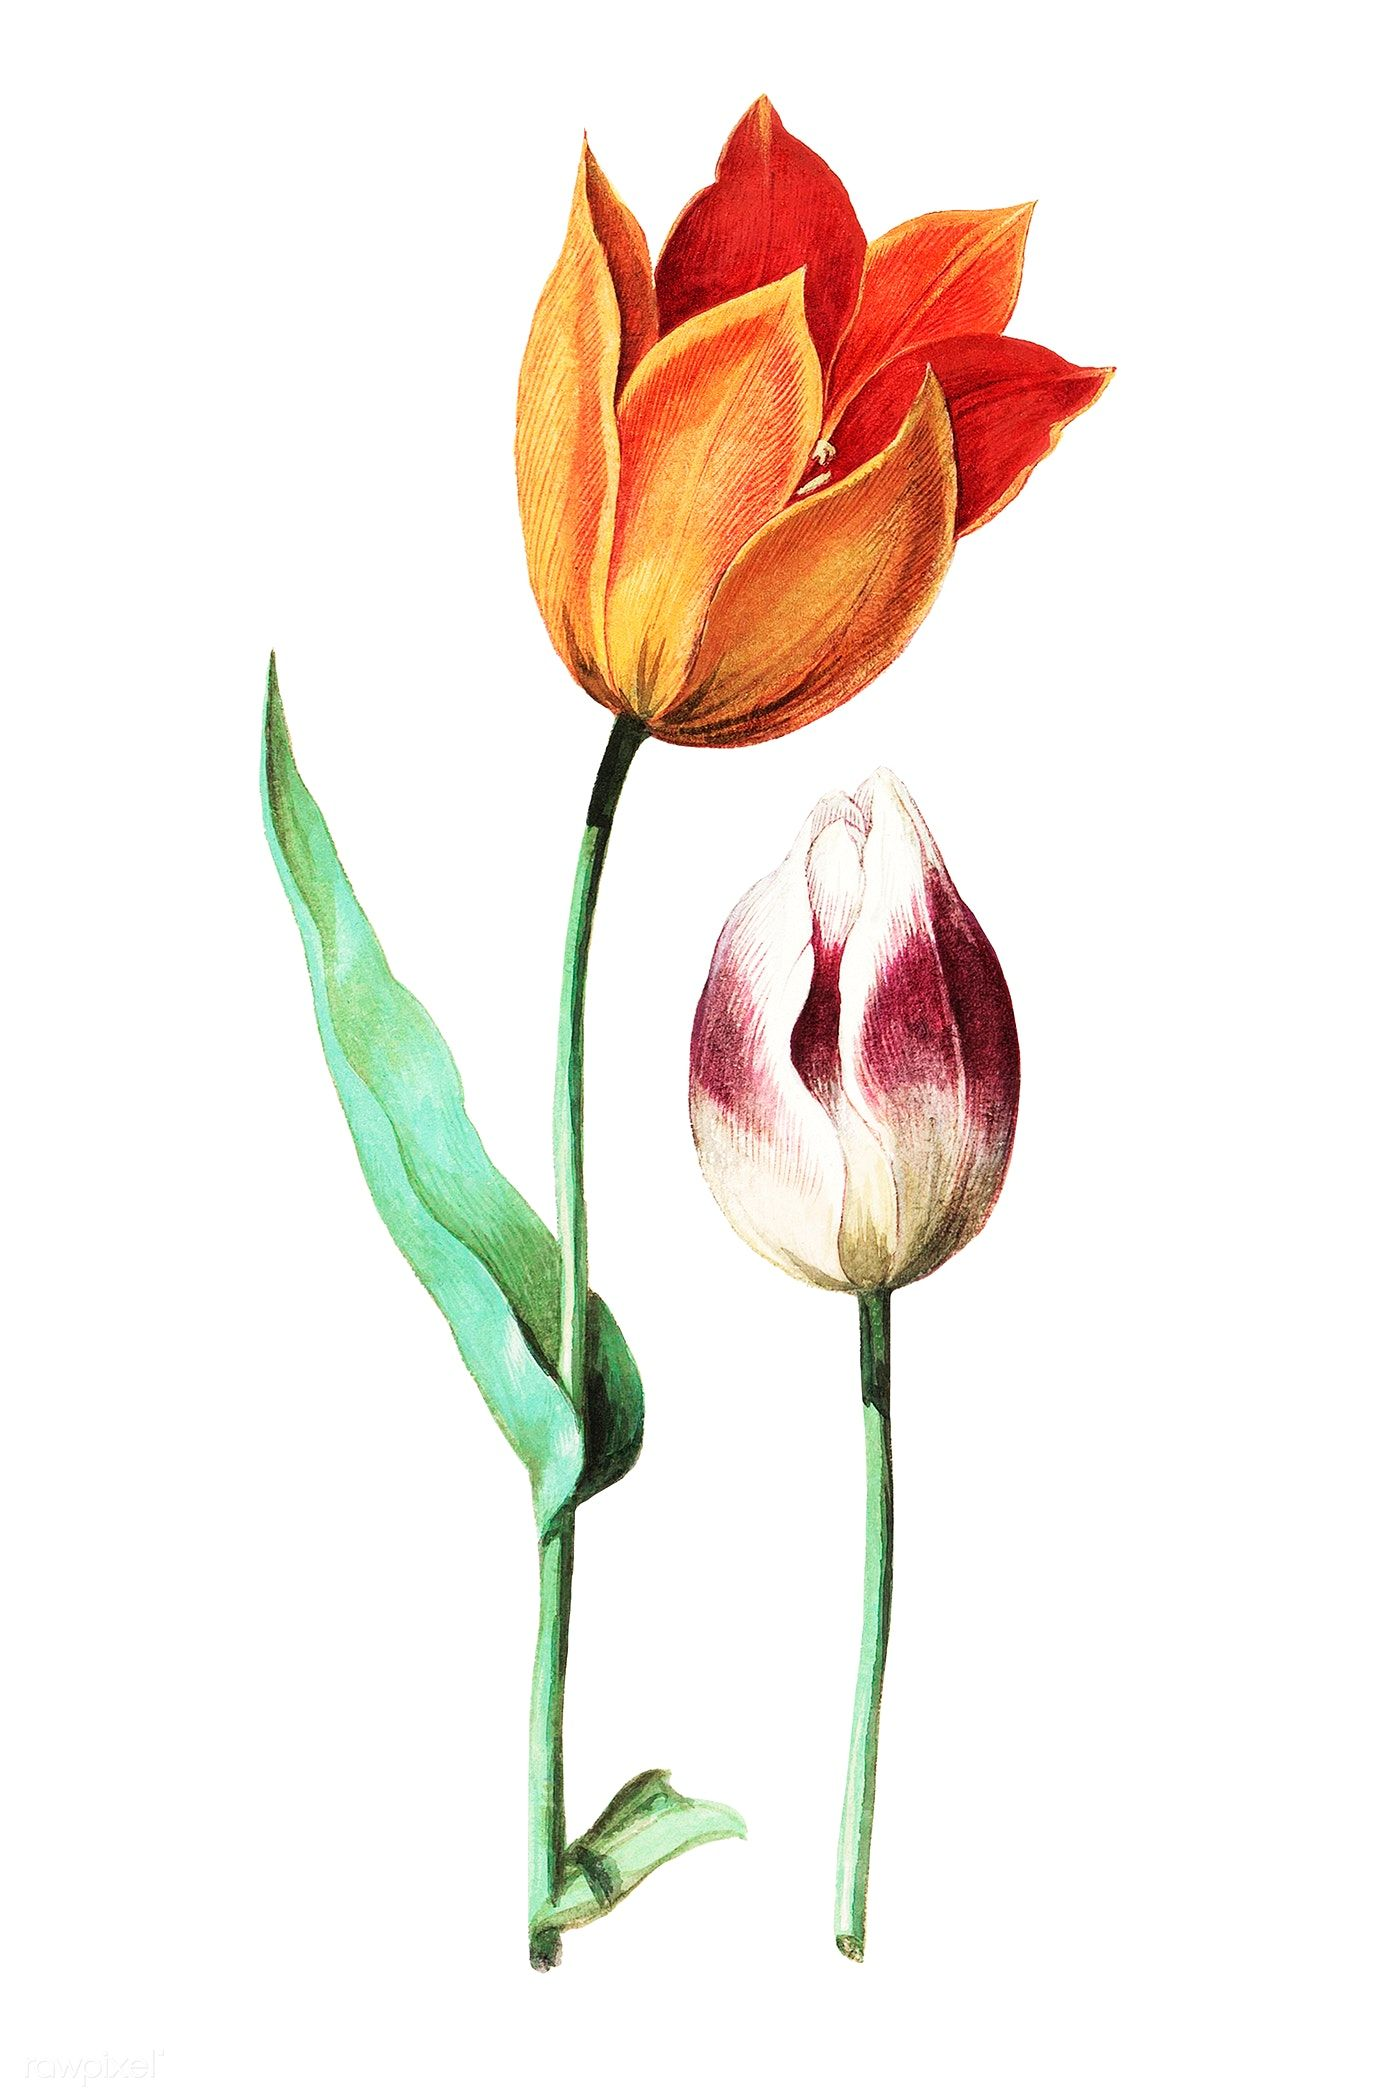 Vintage Tulip Flower Illustration Free Image By Rawpixel Com Flower Illustration Tulips Flowers Hollyhocks Flowers